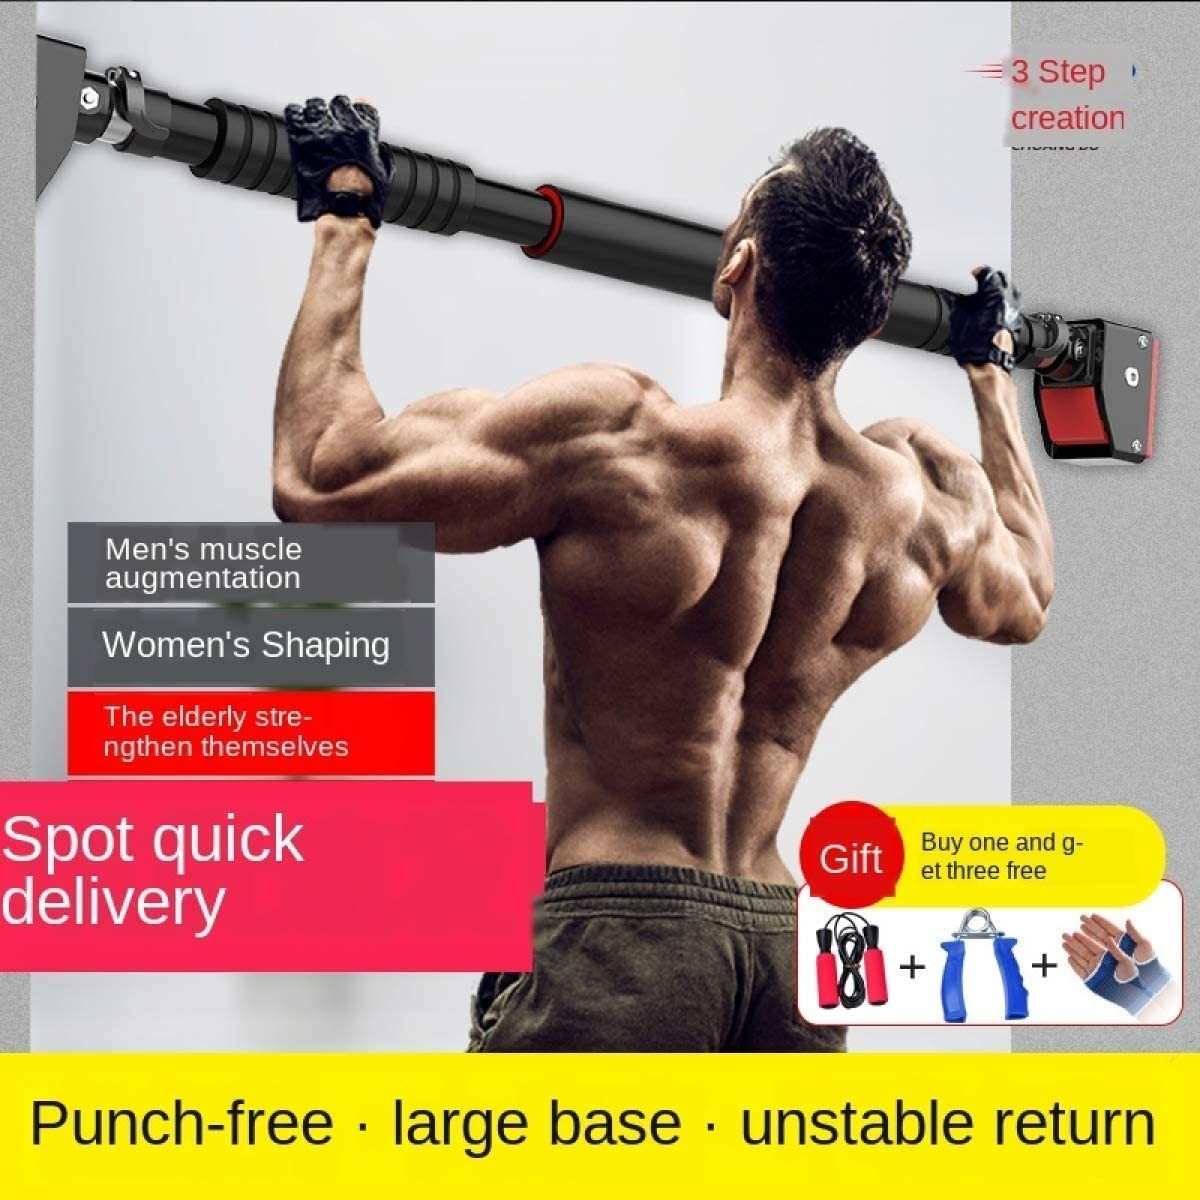 Screwless Door 72-140cm with Lock, Fixed Horizontal Rod Holder Household Ring Pull Up Training Rod 350kg, Fitness Pull-up Rod is Safe and Durable